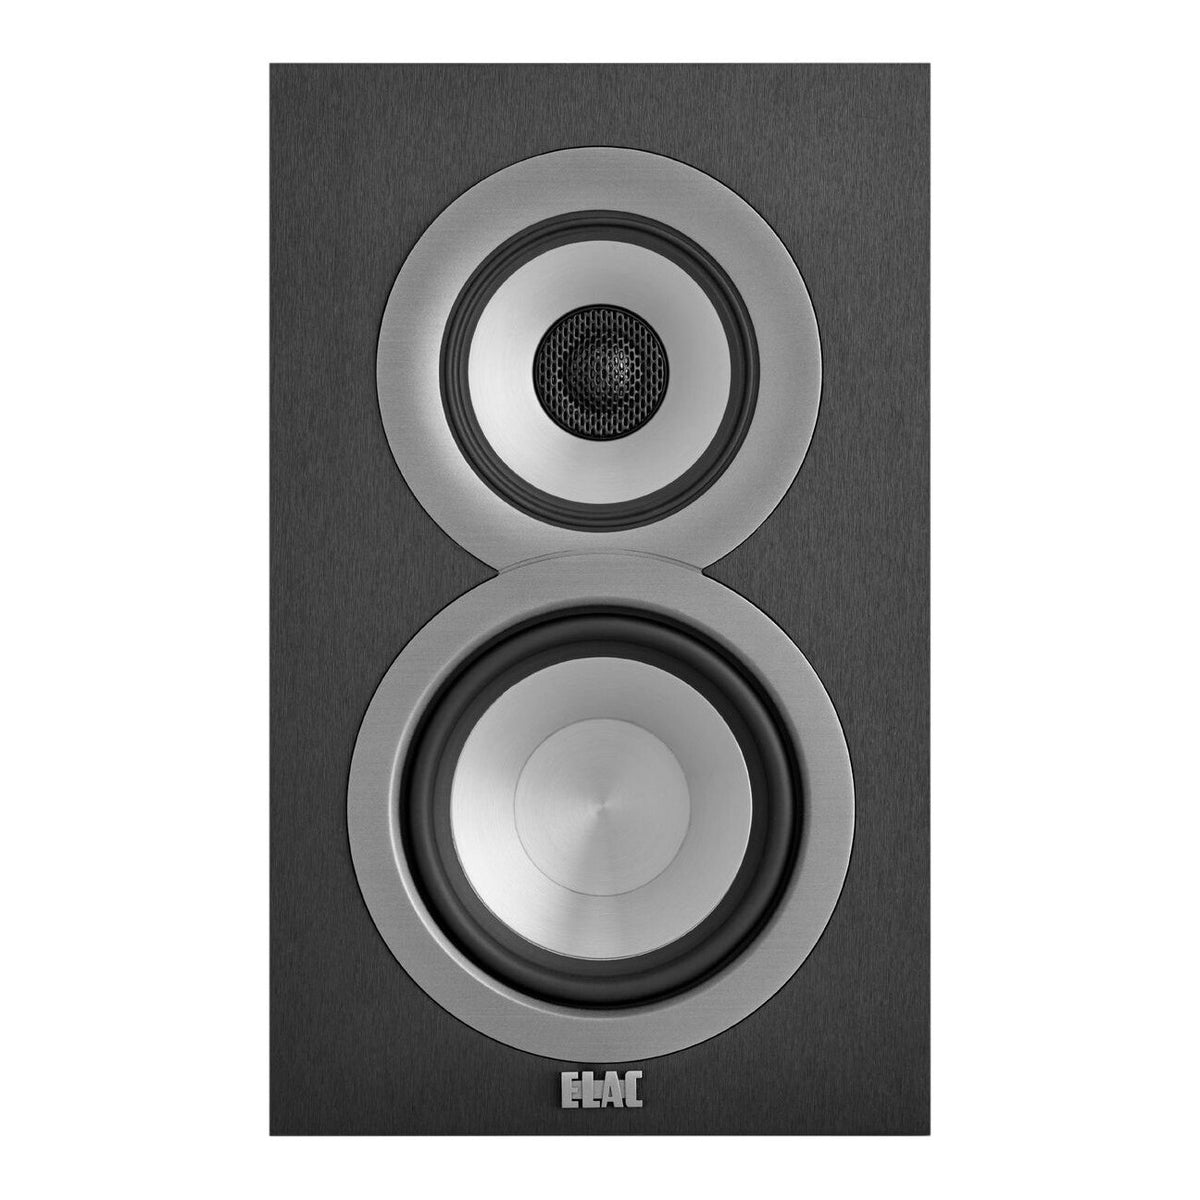 "Elac: UB5 Uni-Fi Series 5 1/4"" Concentric 3-Way Bookshelf Speakers (UB51-BK)"